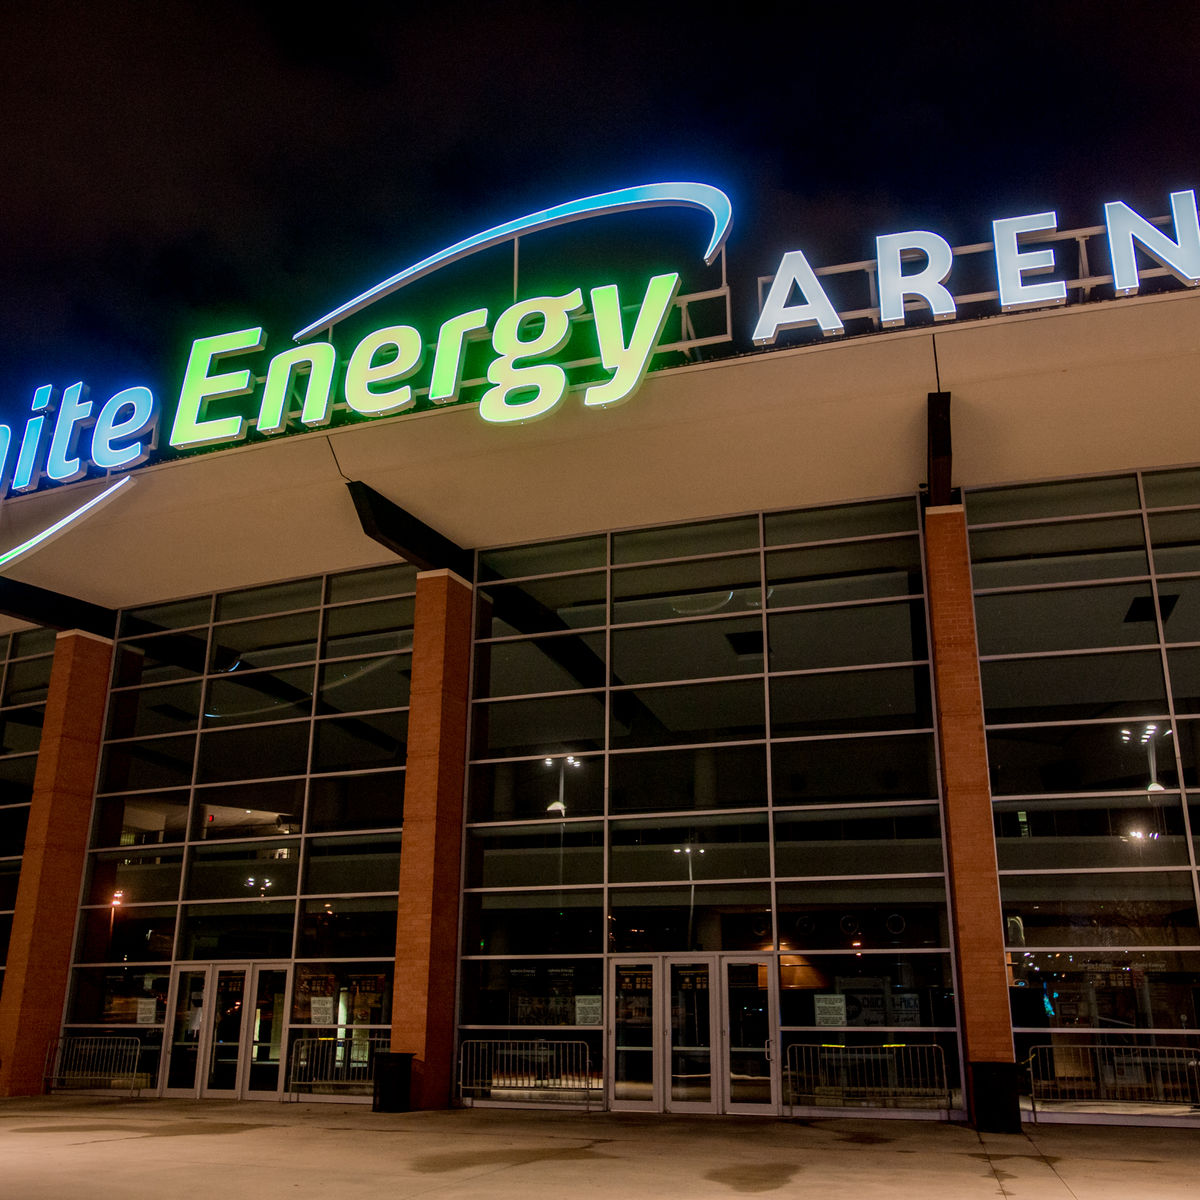 Exterior image of Infinite Energy Center